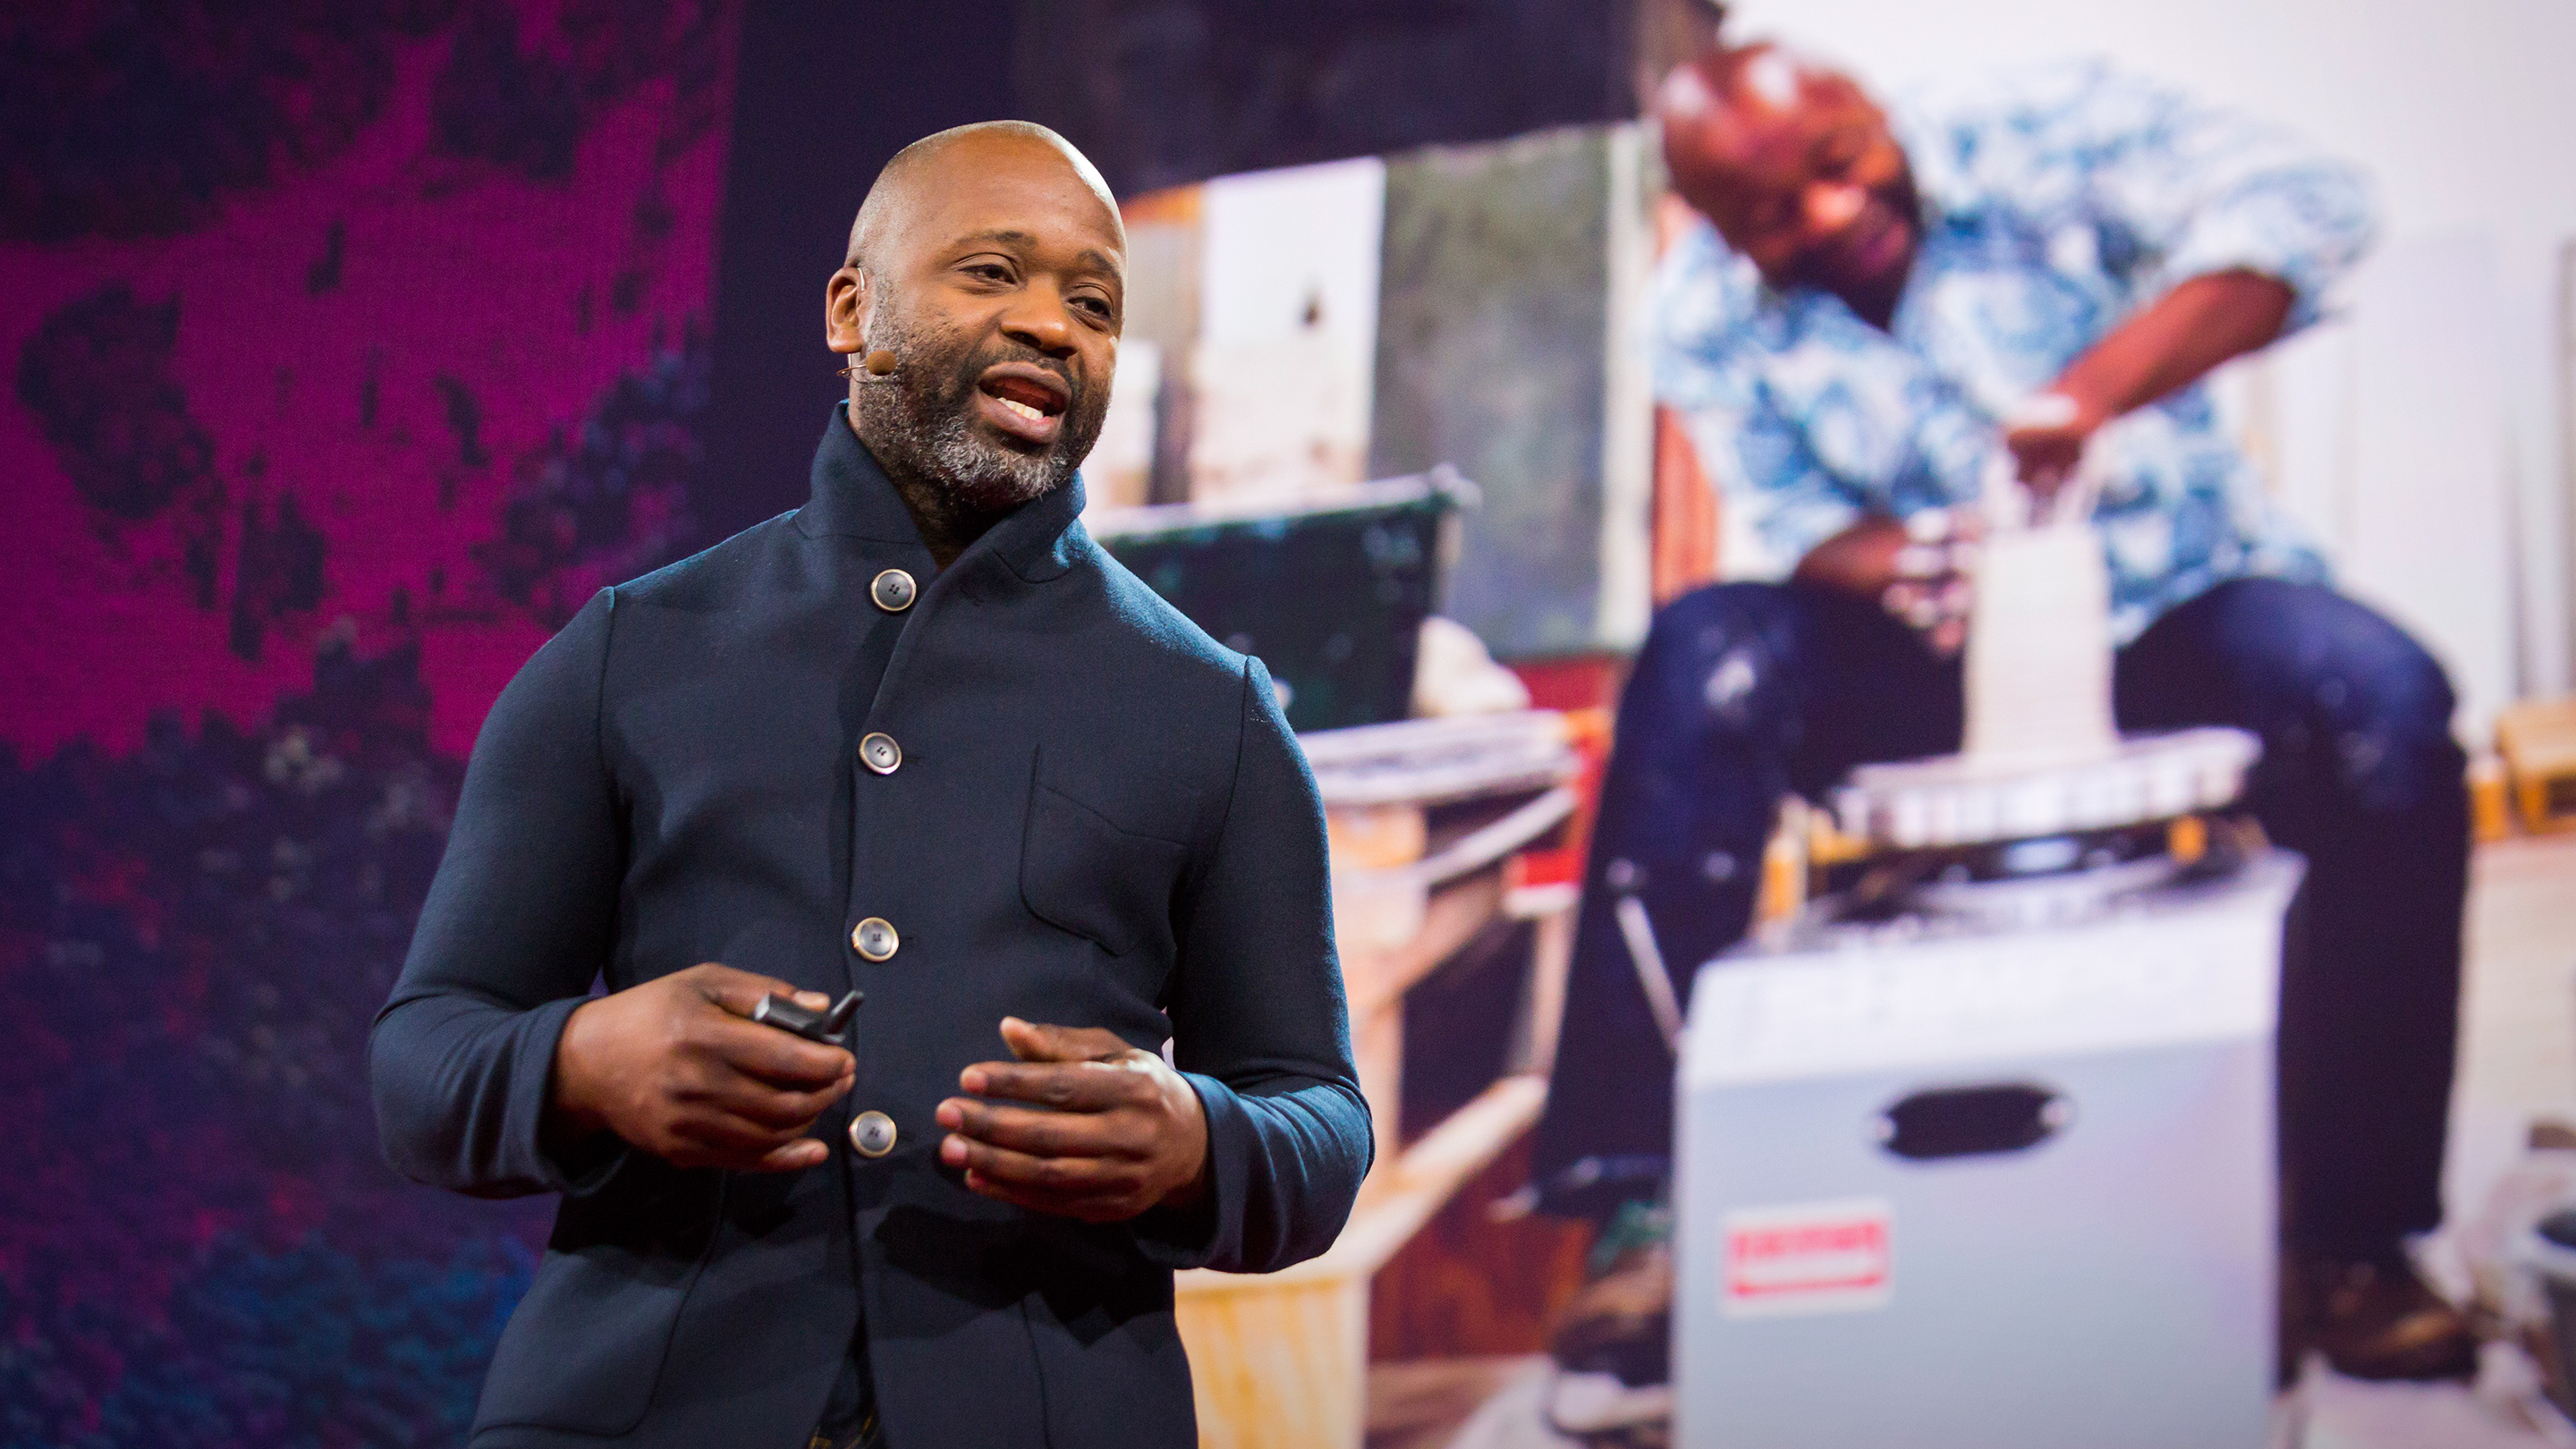 Theaster Gates: How to revive a neighborhood: with imagination, beauty and art thumbnail